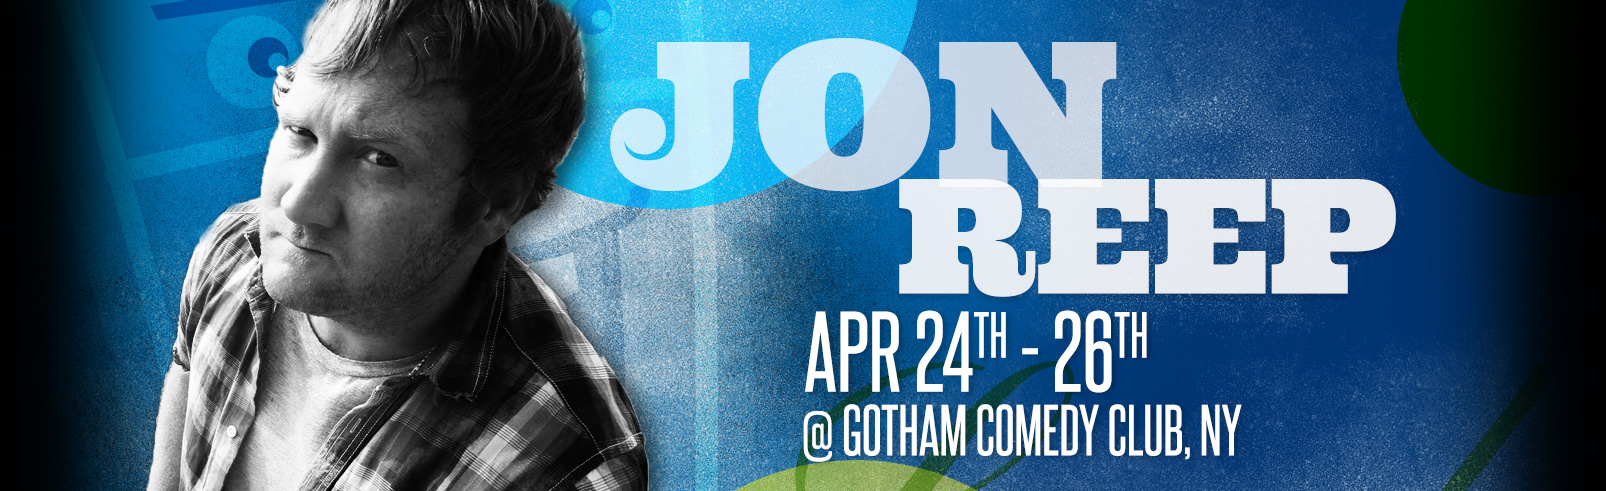 Jon Reep @ Gotham Comedy Club